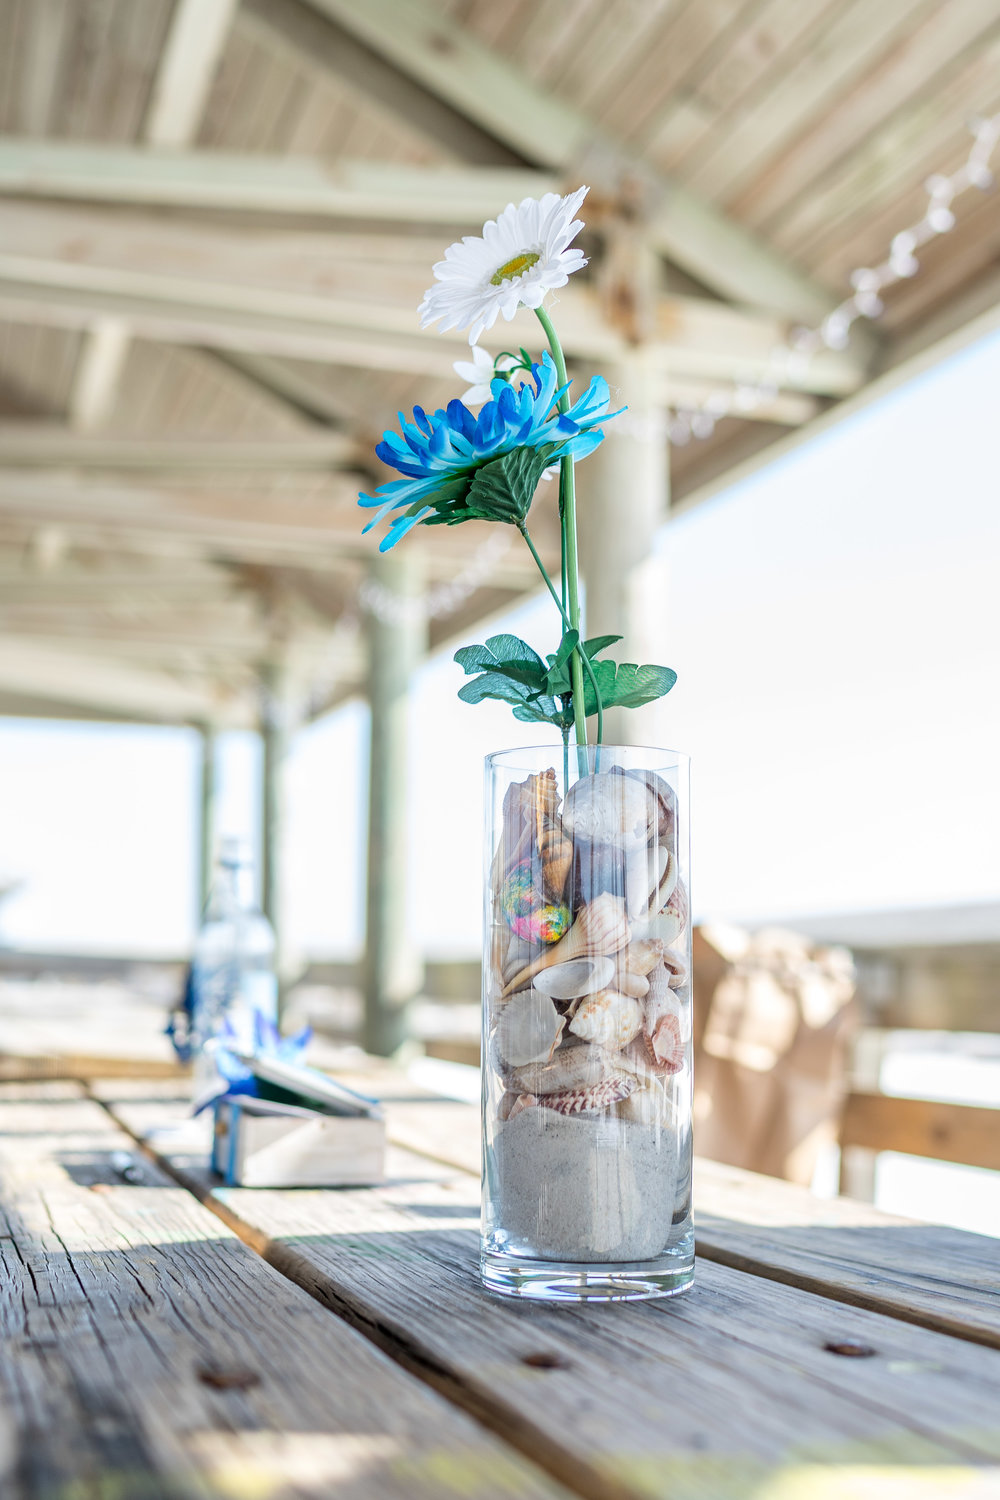 image of glass of sand and flowers detail shot from a pensacola beach wedding